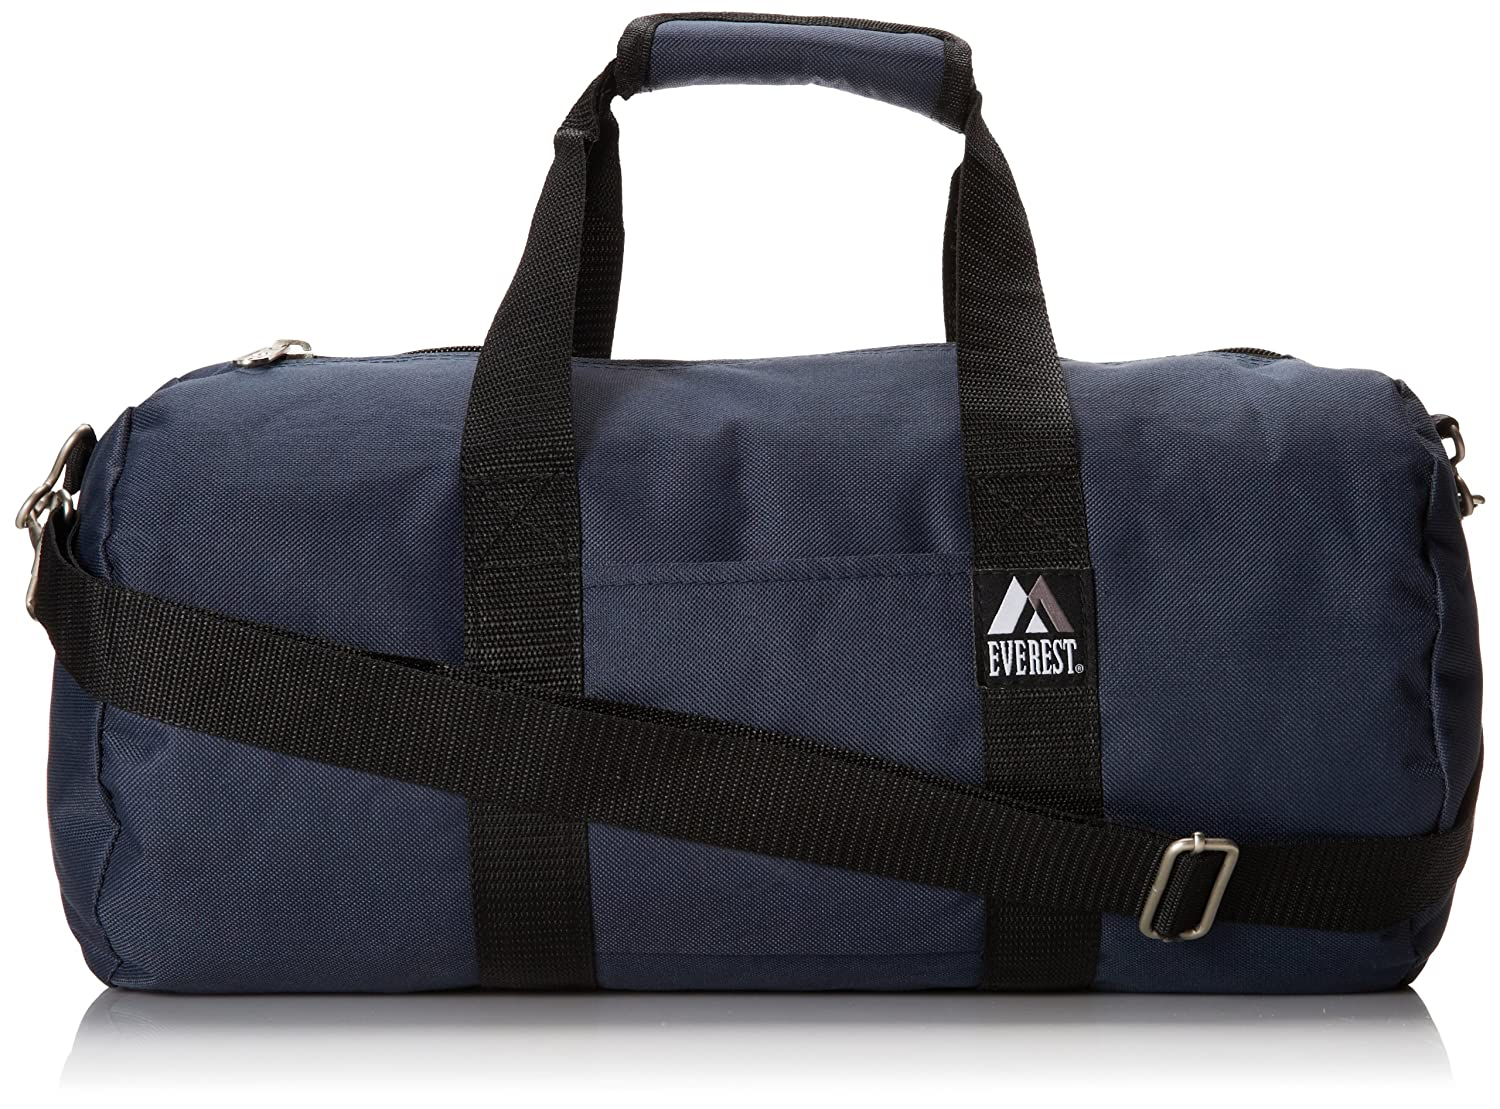 Everest 16-Inch Round Duffel, Black, One Size 16P-BK